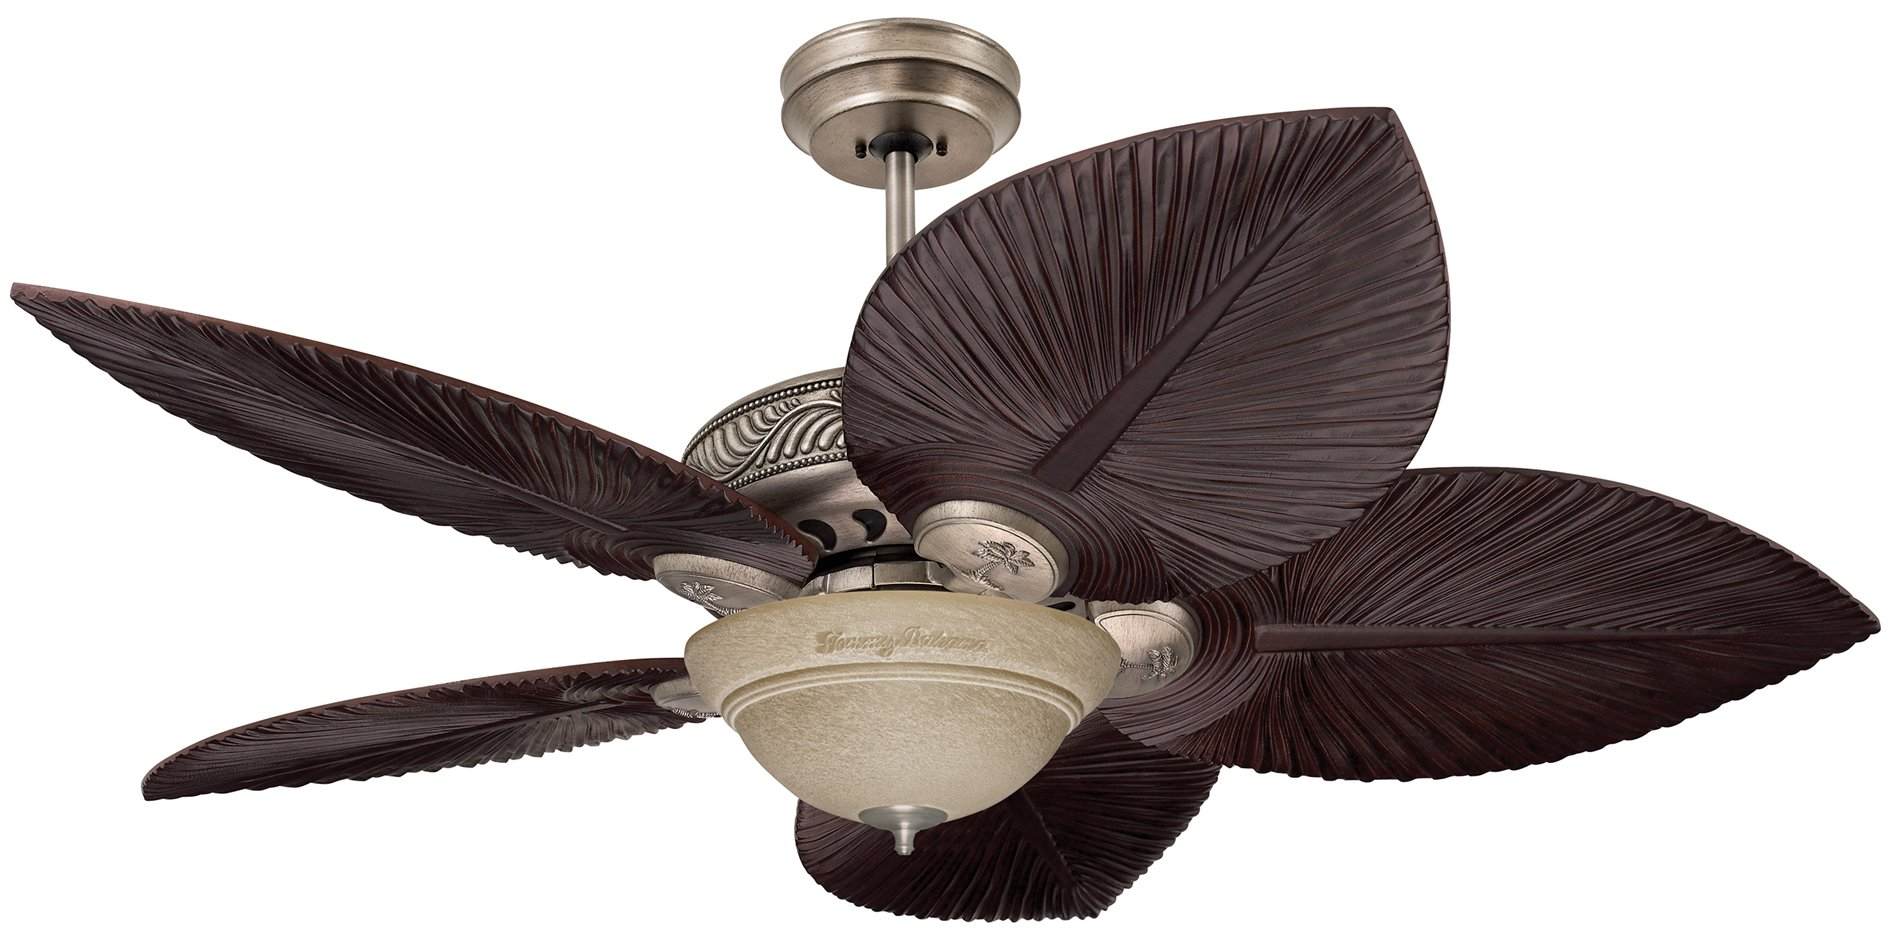 Antique Pewter Housing Shown With Hand Carved Dark Gany Blades Tb540dm Trella Amber Mist Light Fixture Tb735amm Sold Separately